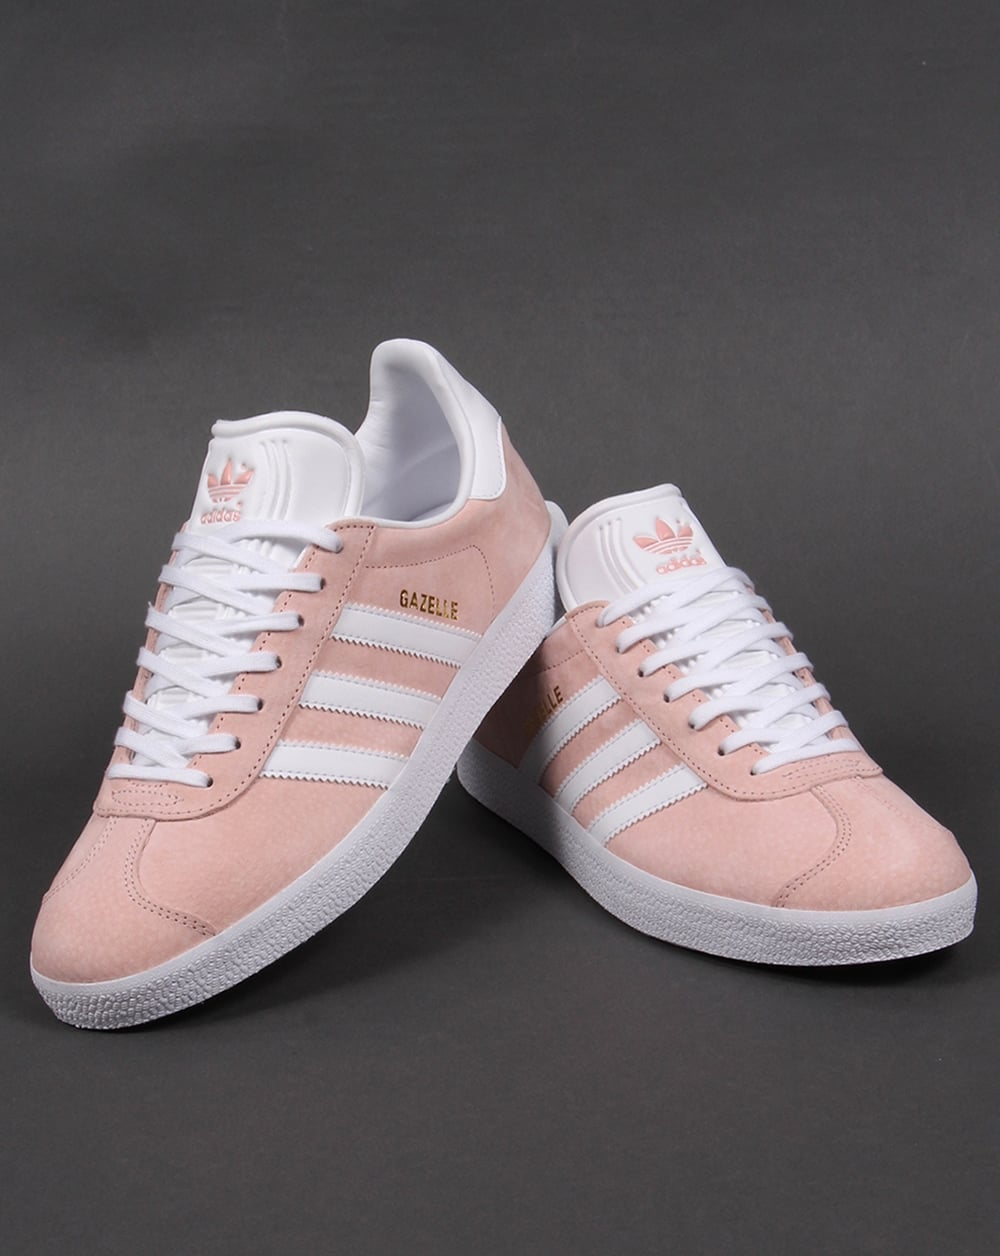 Details about Adidas Sneakers Women Gazelle Bb2759 Pink